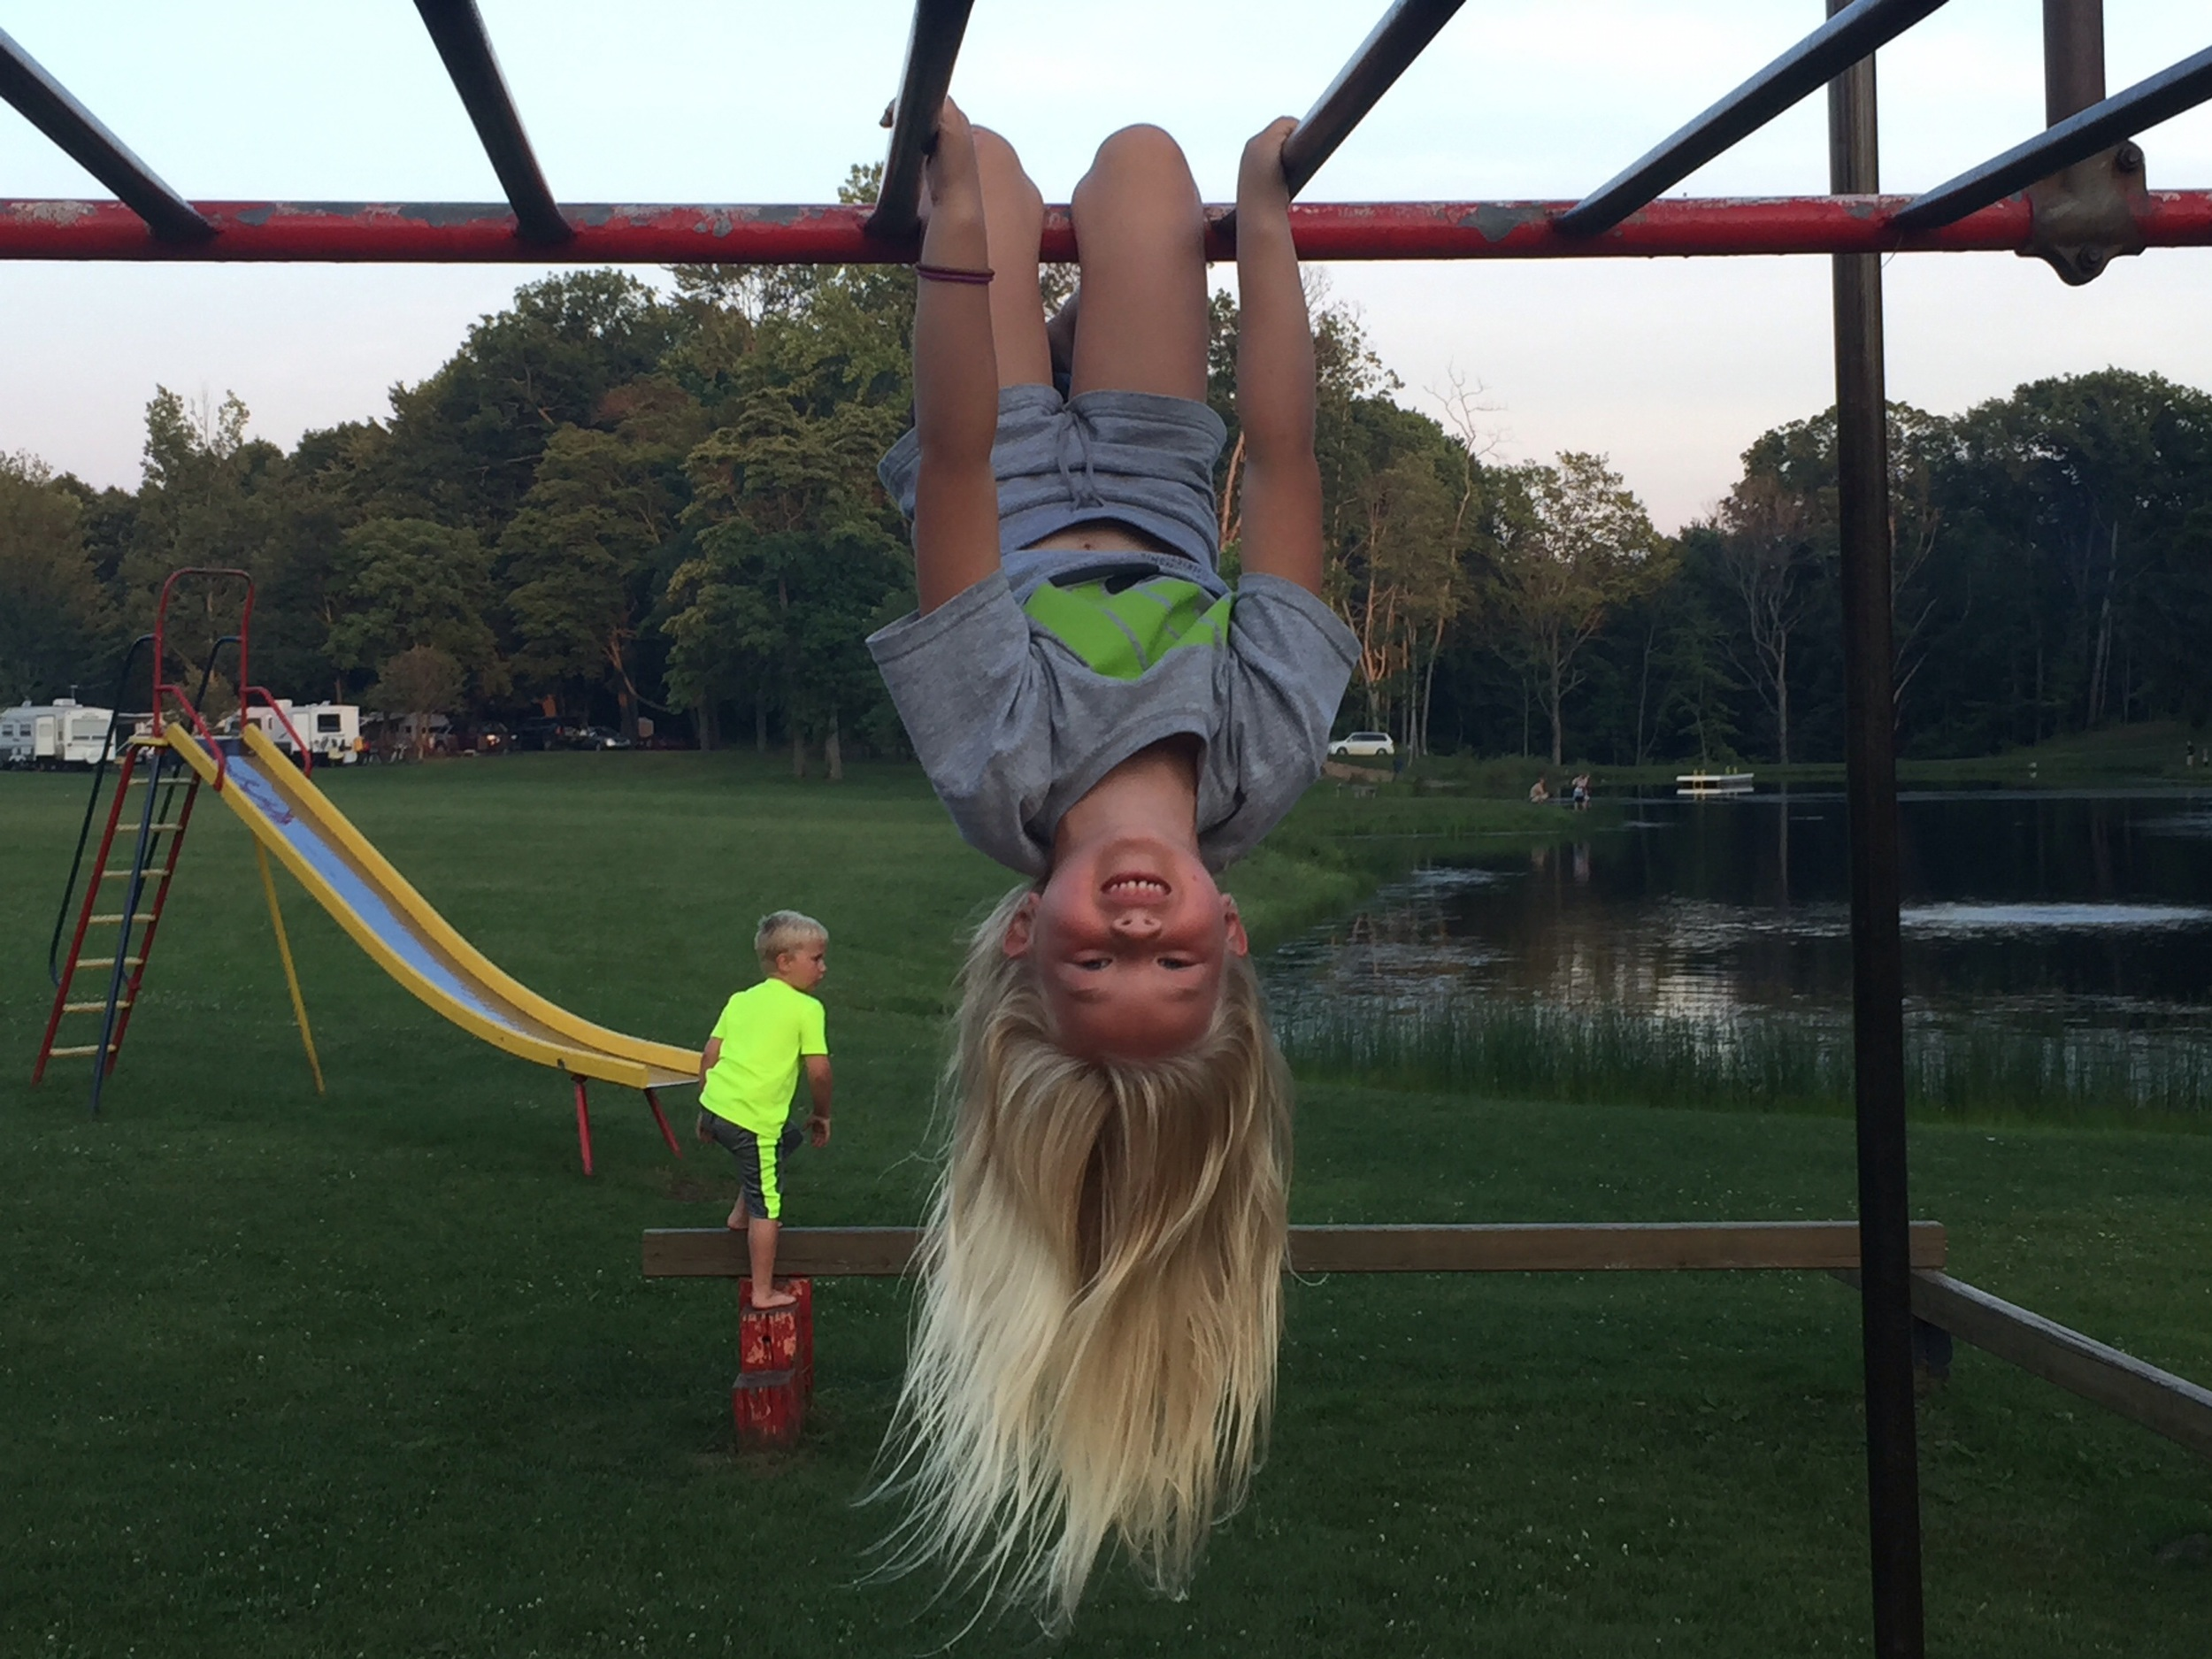 If nothing else, I've managed to teach her how to use monkey bars appropriately.